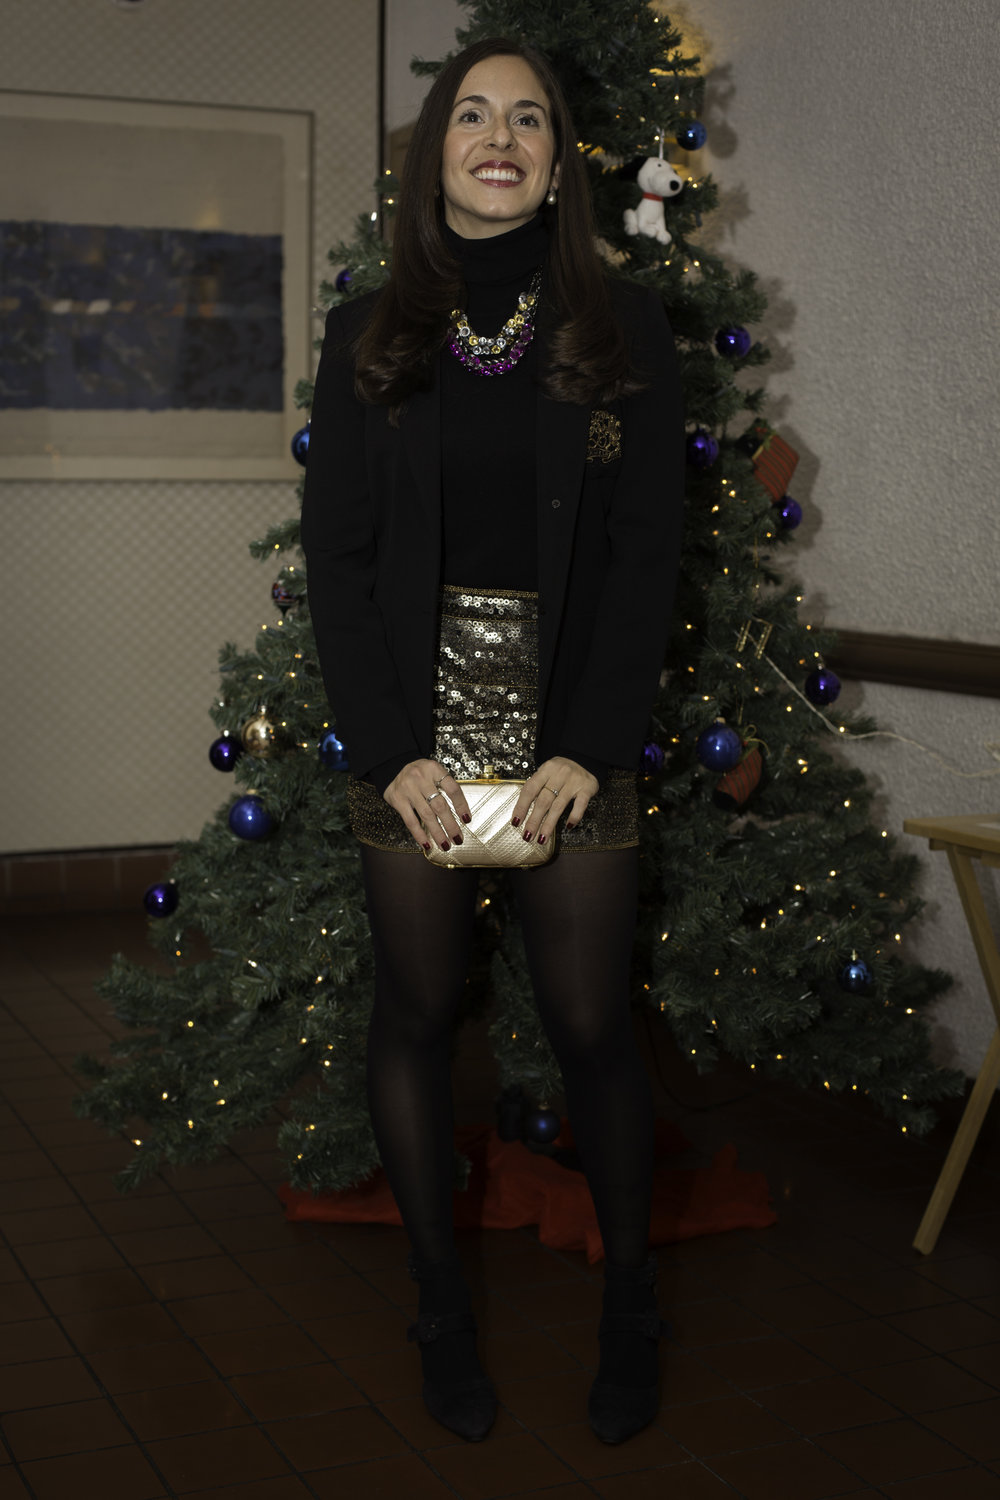 Standing by the tree at a holiday party wearing my Ralph Lauren black with gold crest blazer, a Zara black turtleneck, gold Topshop sequin mini skirt, black tights, and vintage black suede pumps. My gold clutch is a Coach python holiday clutch. Photography by Francisco Graciano.